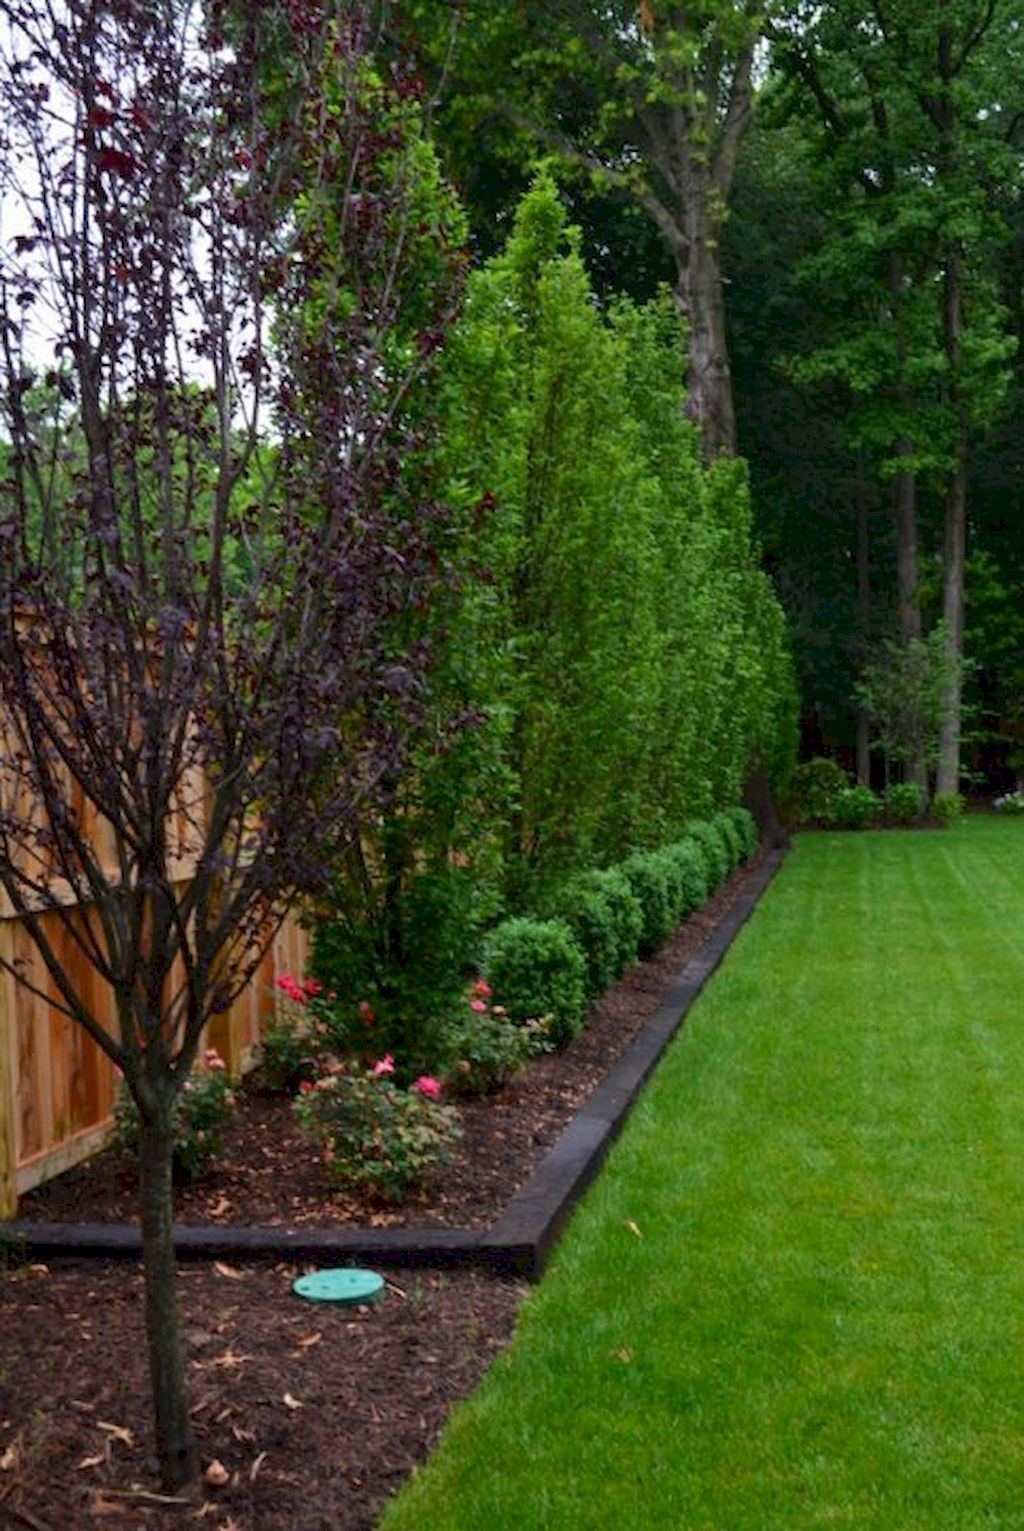 40 beautiful backyard landscaping ideas on a budget landscaping